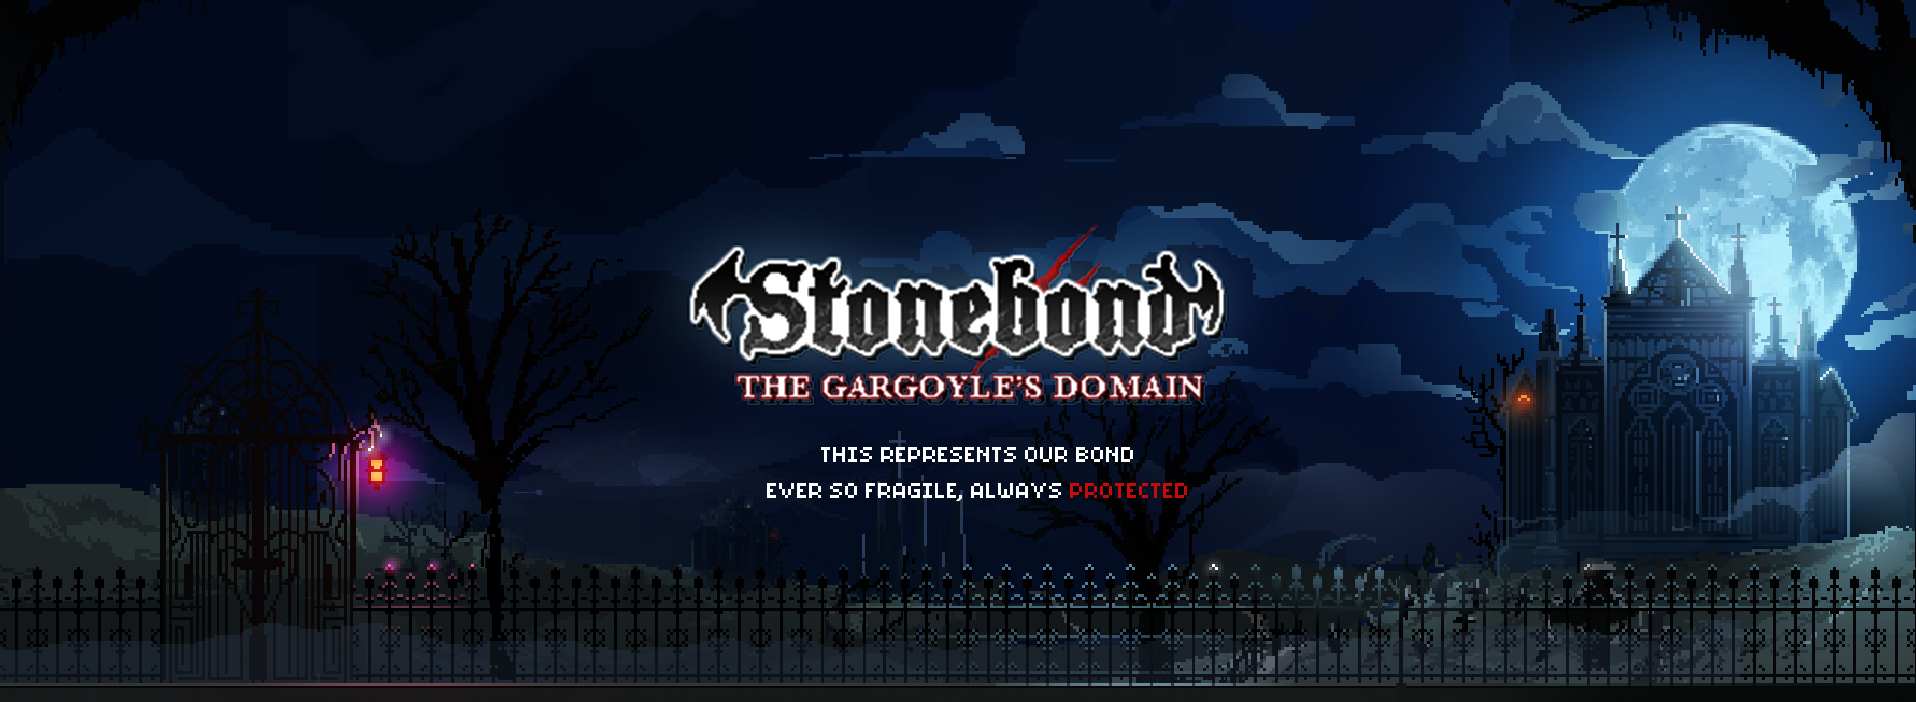 Stonebond: The Gargoyle's Domain